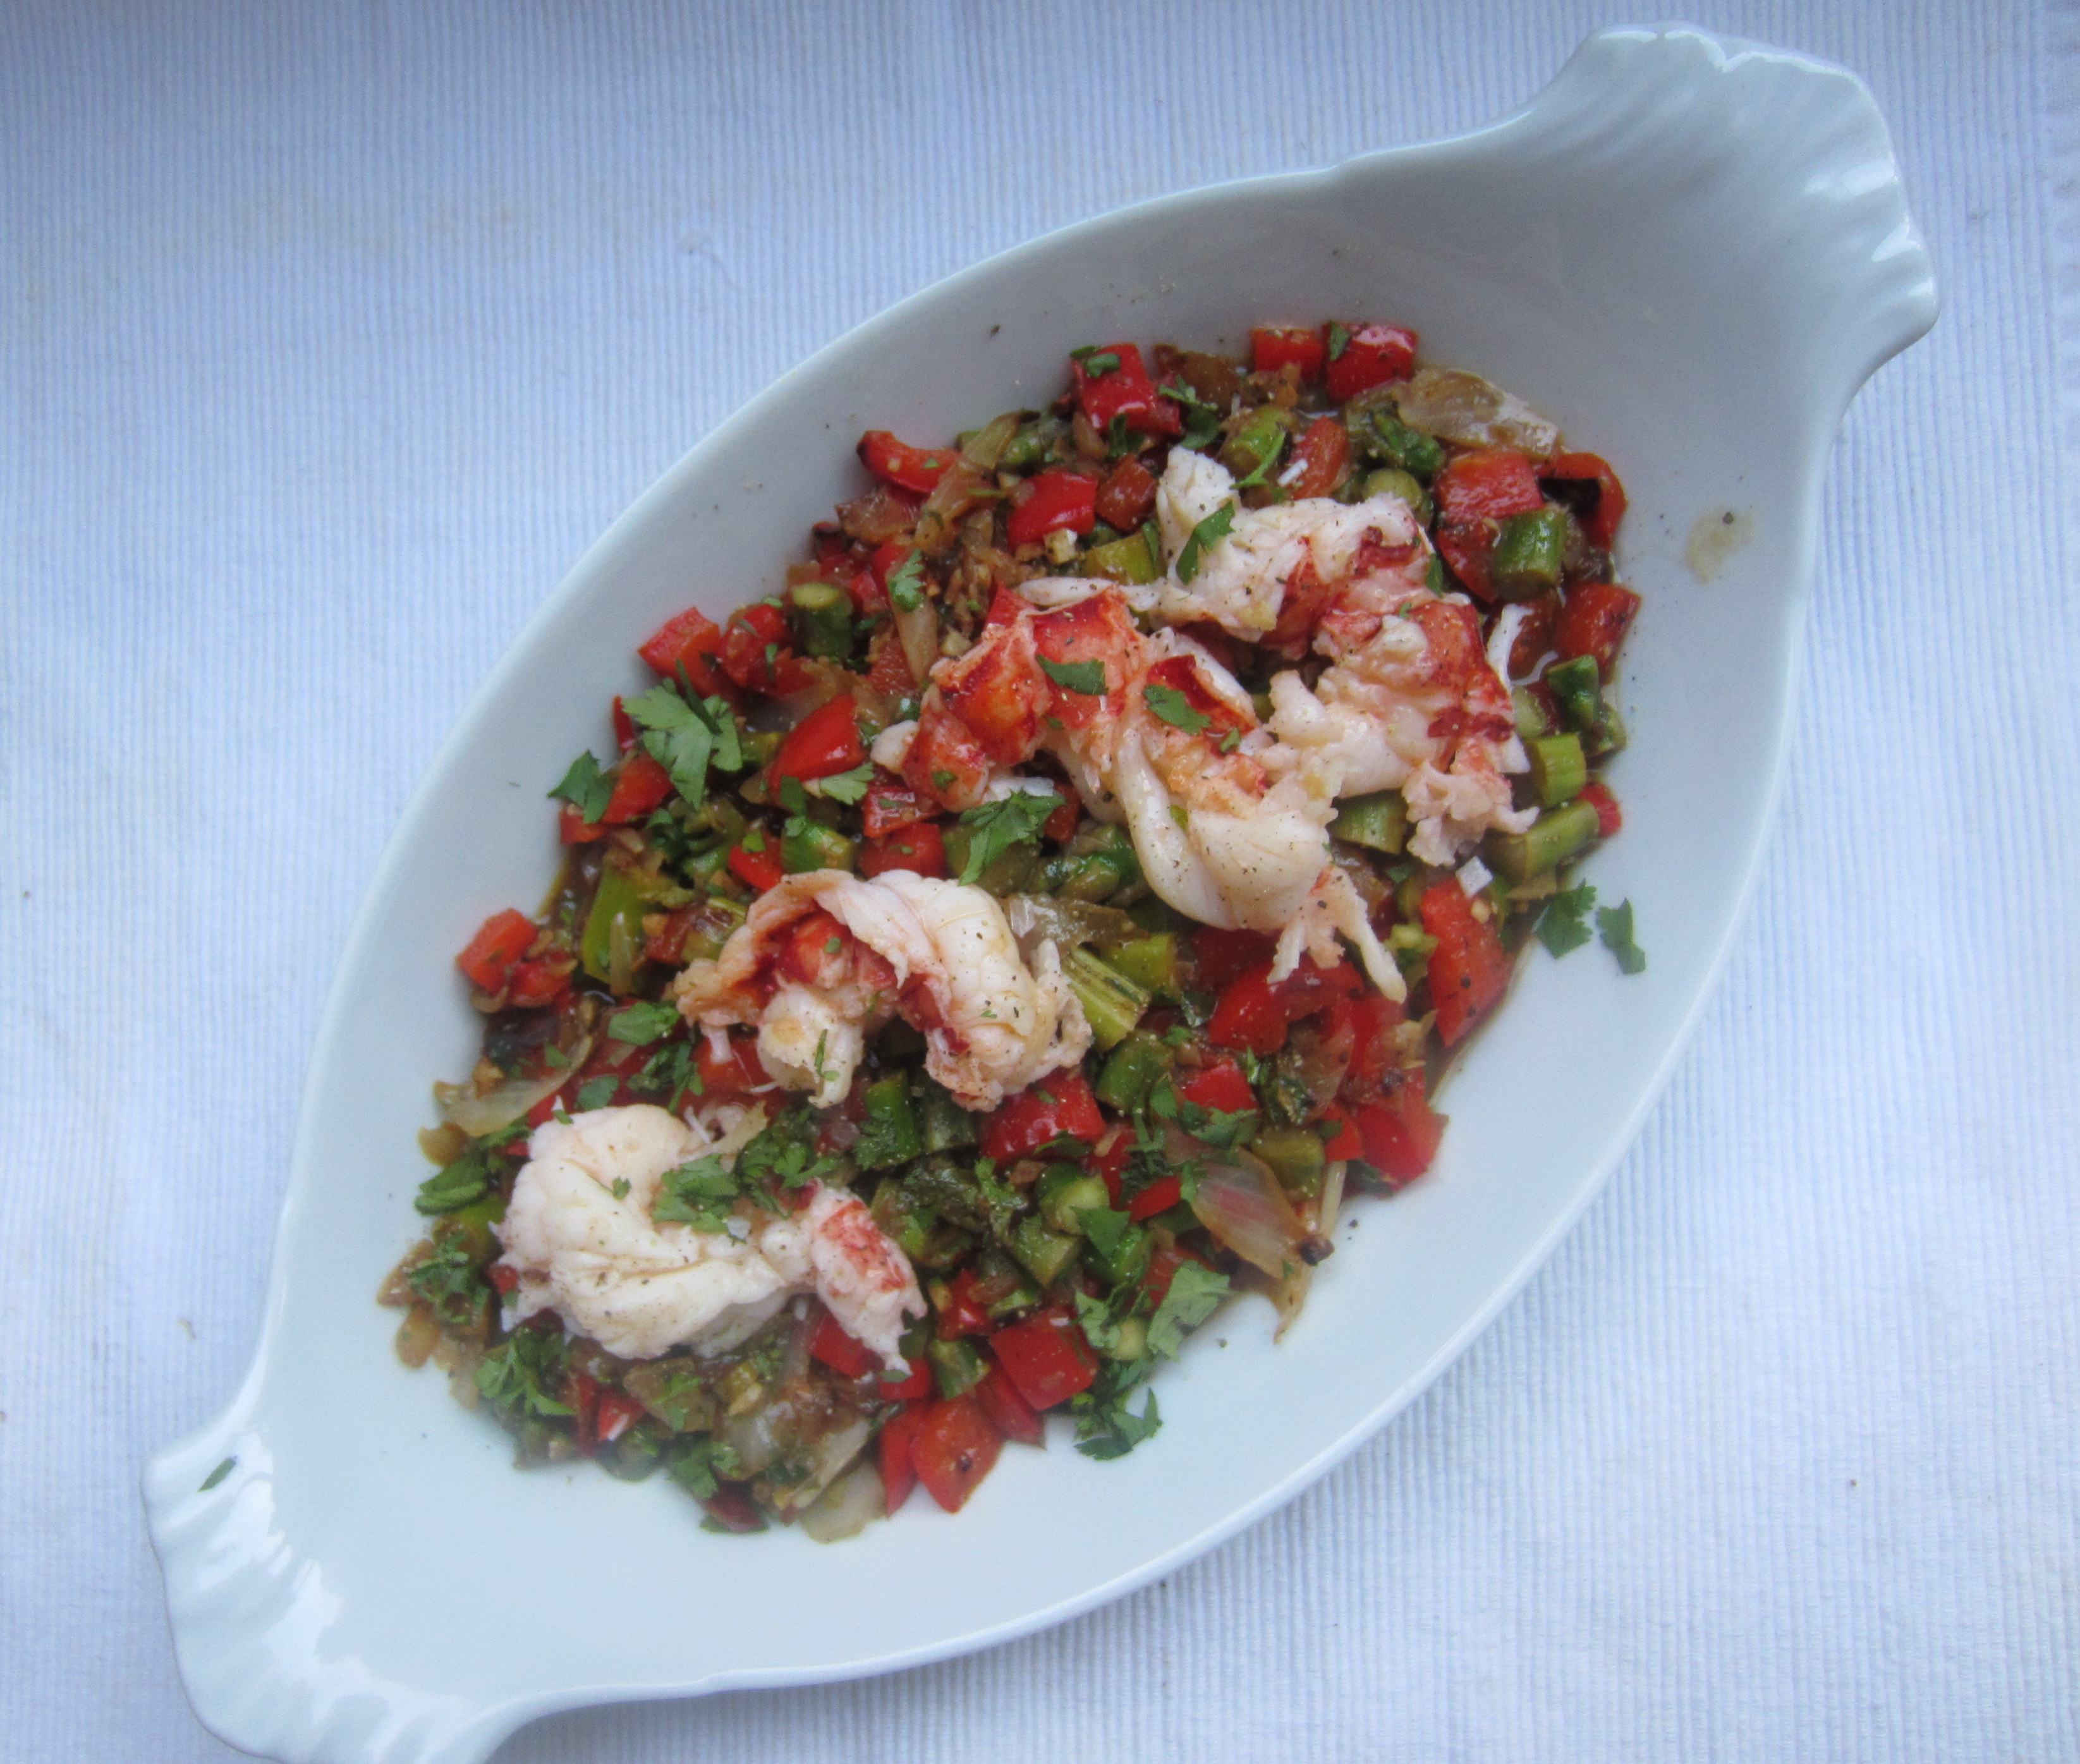 Seared Lobster Tails with Asparagus and Red Pepper SautΓ©